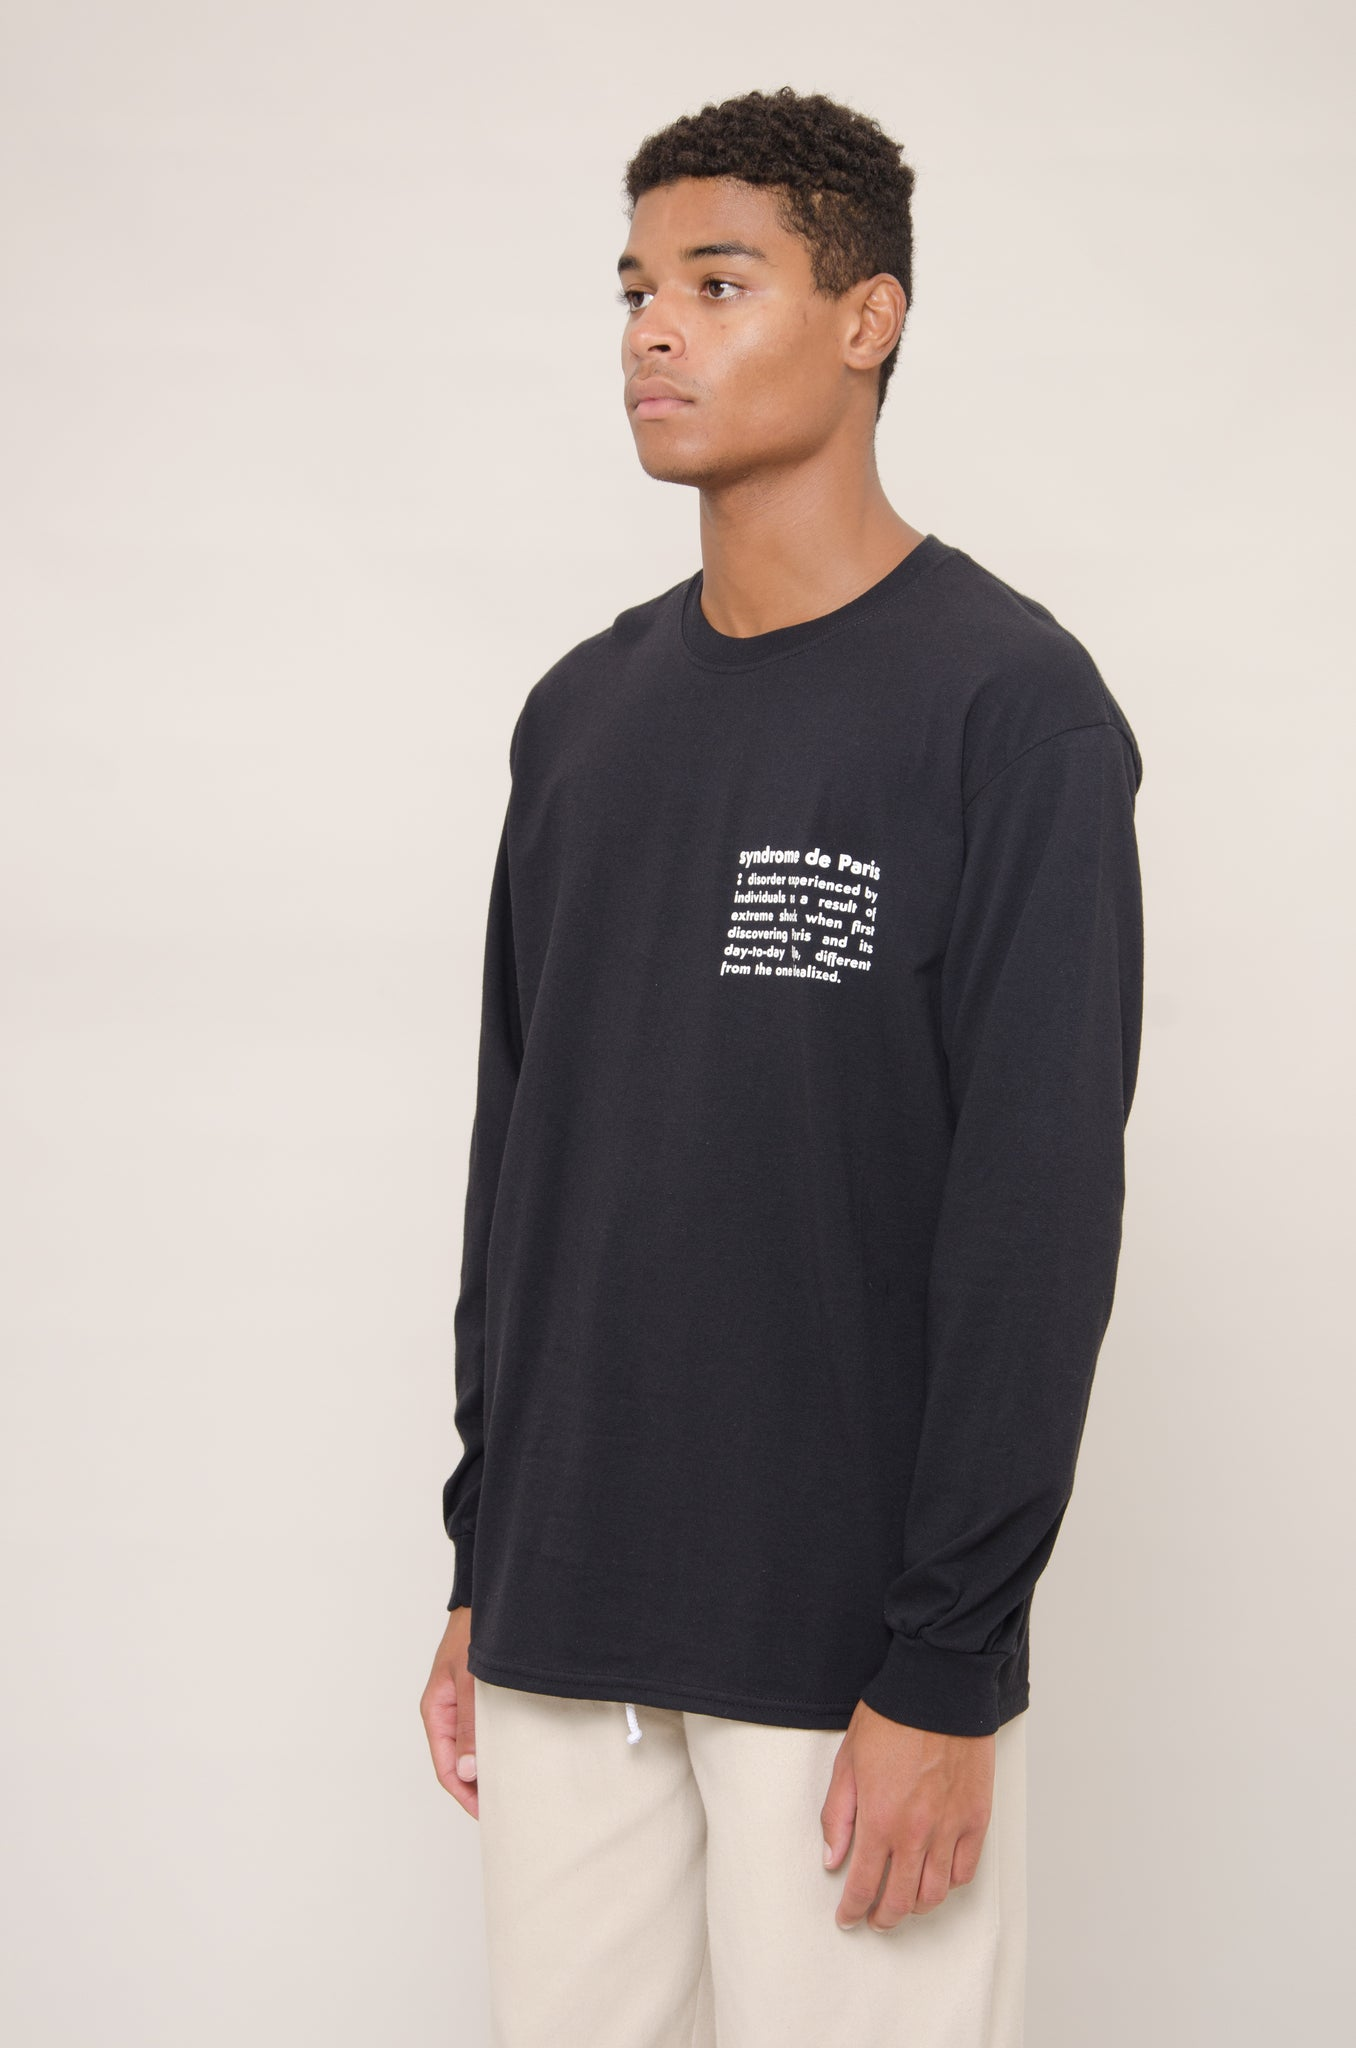 Longsleeve Definition Tee (Black)